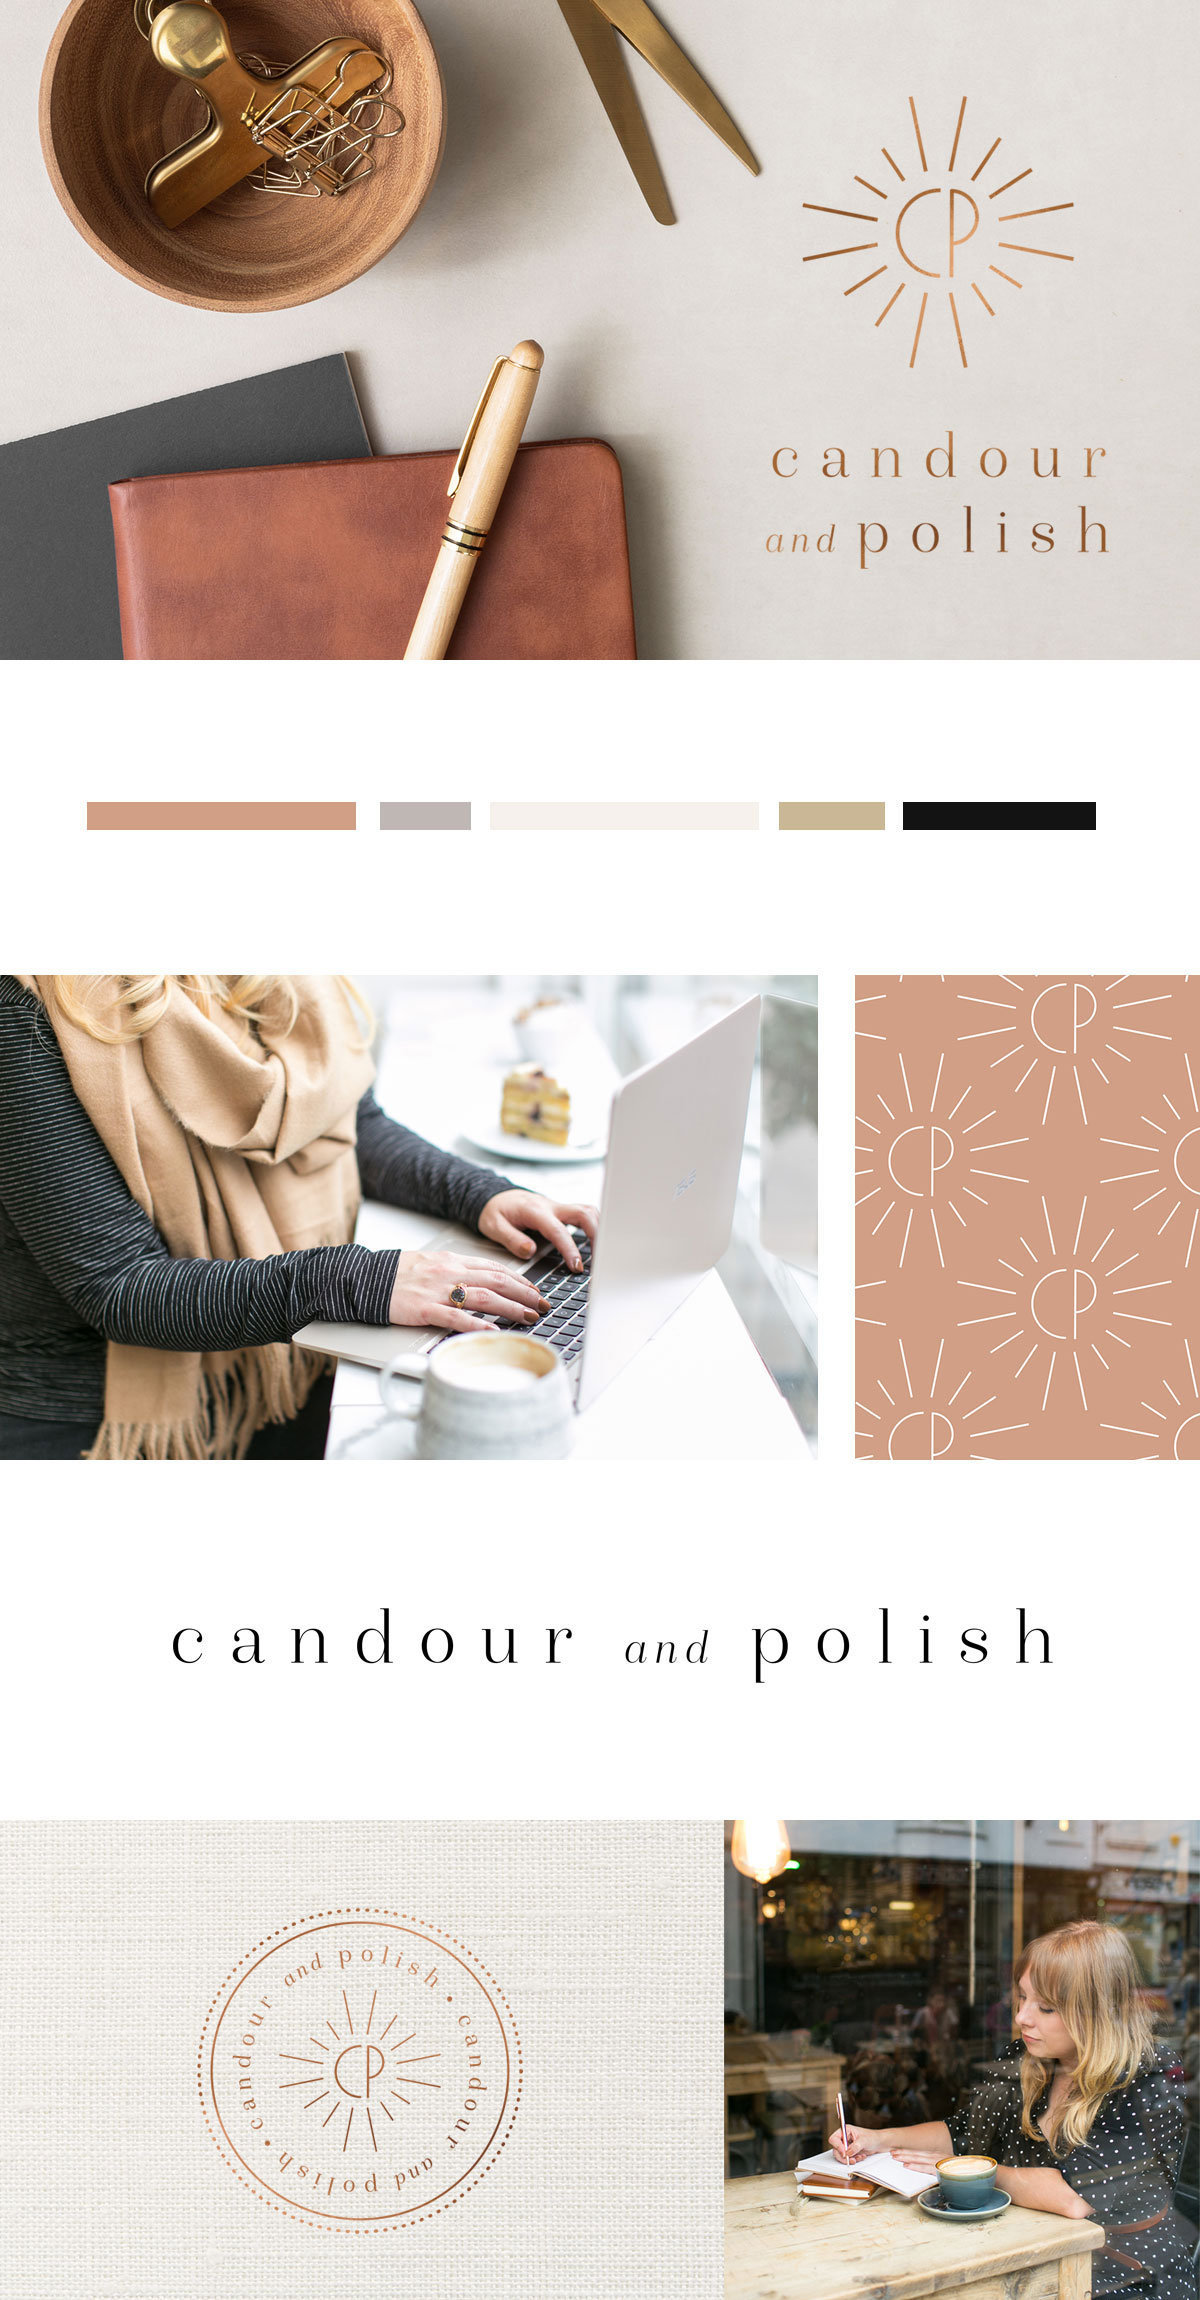 Brand launch | Candour & Polish, copywriting for lifestyle brands and wedding professionals. Wedding business branding, branding for female entrepreneurs, feminine brand design, luxury branding, logo design, mood board, brand board